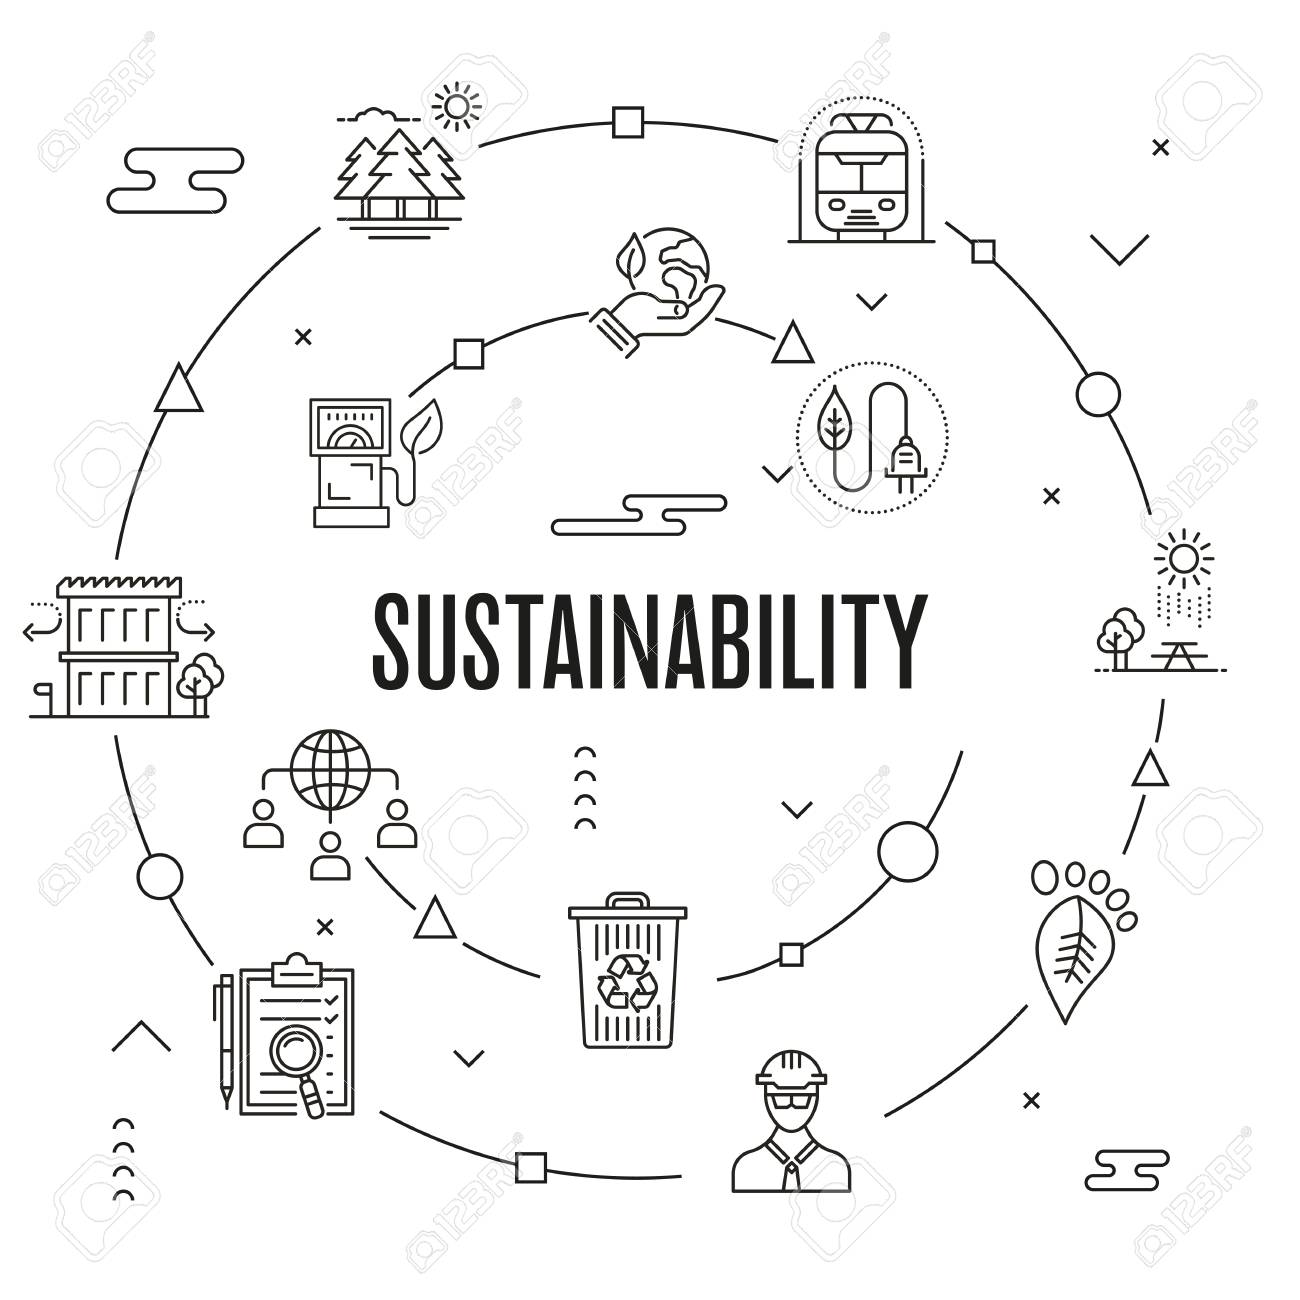 Sustainability Concept vector illustration. - 89675378